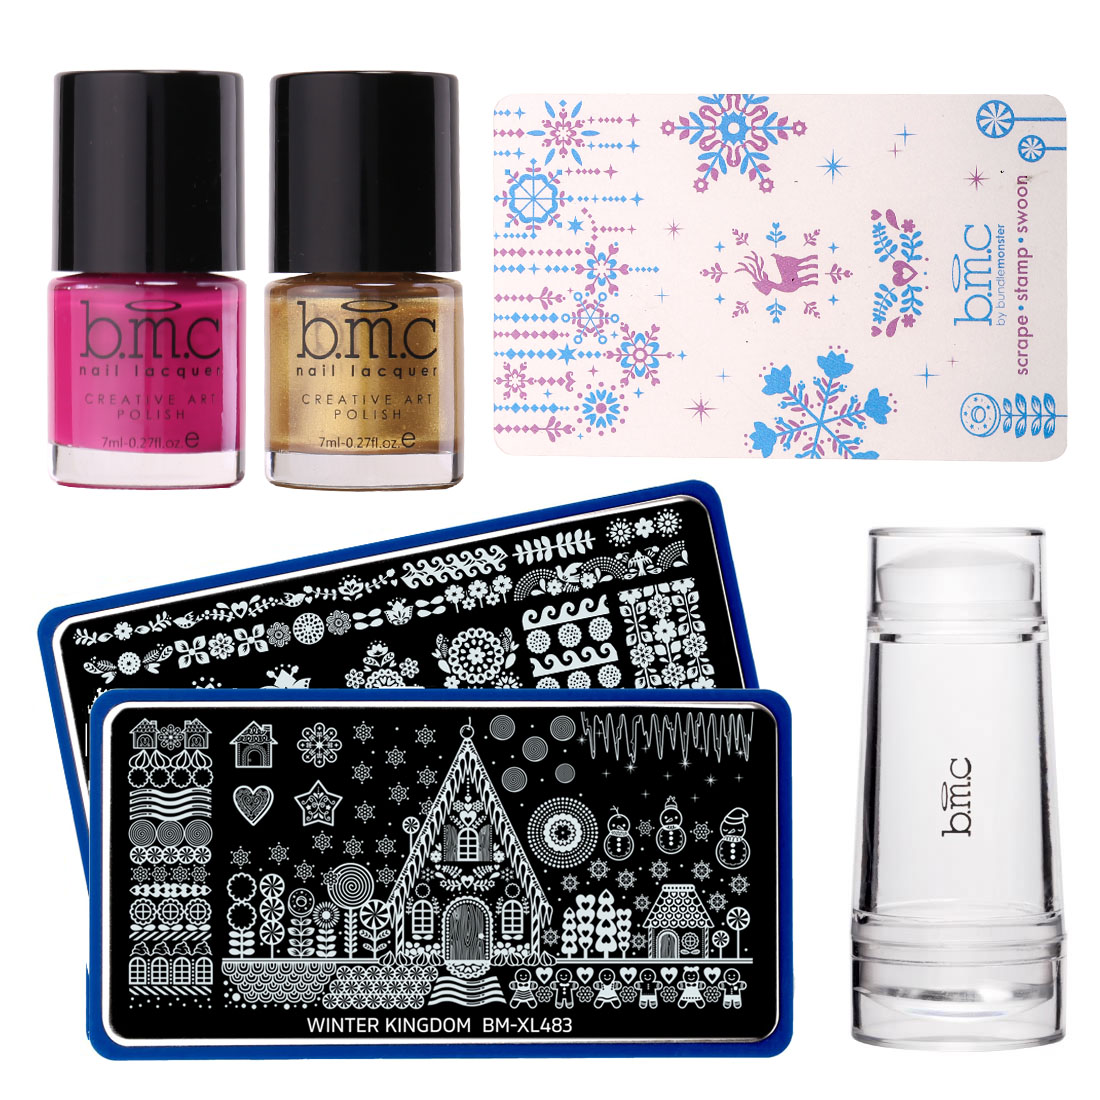 BMC Sugar Coated: Christmas Nail Stamping Starter Kit - 2 Plates, 2 Polishes, Scraper, & Stamper